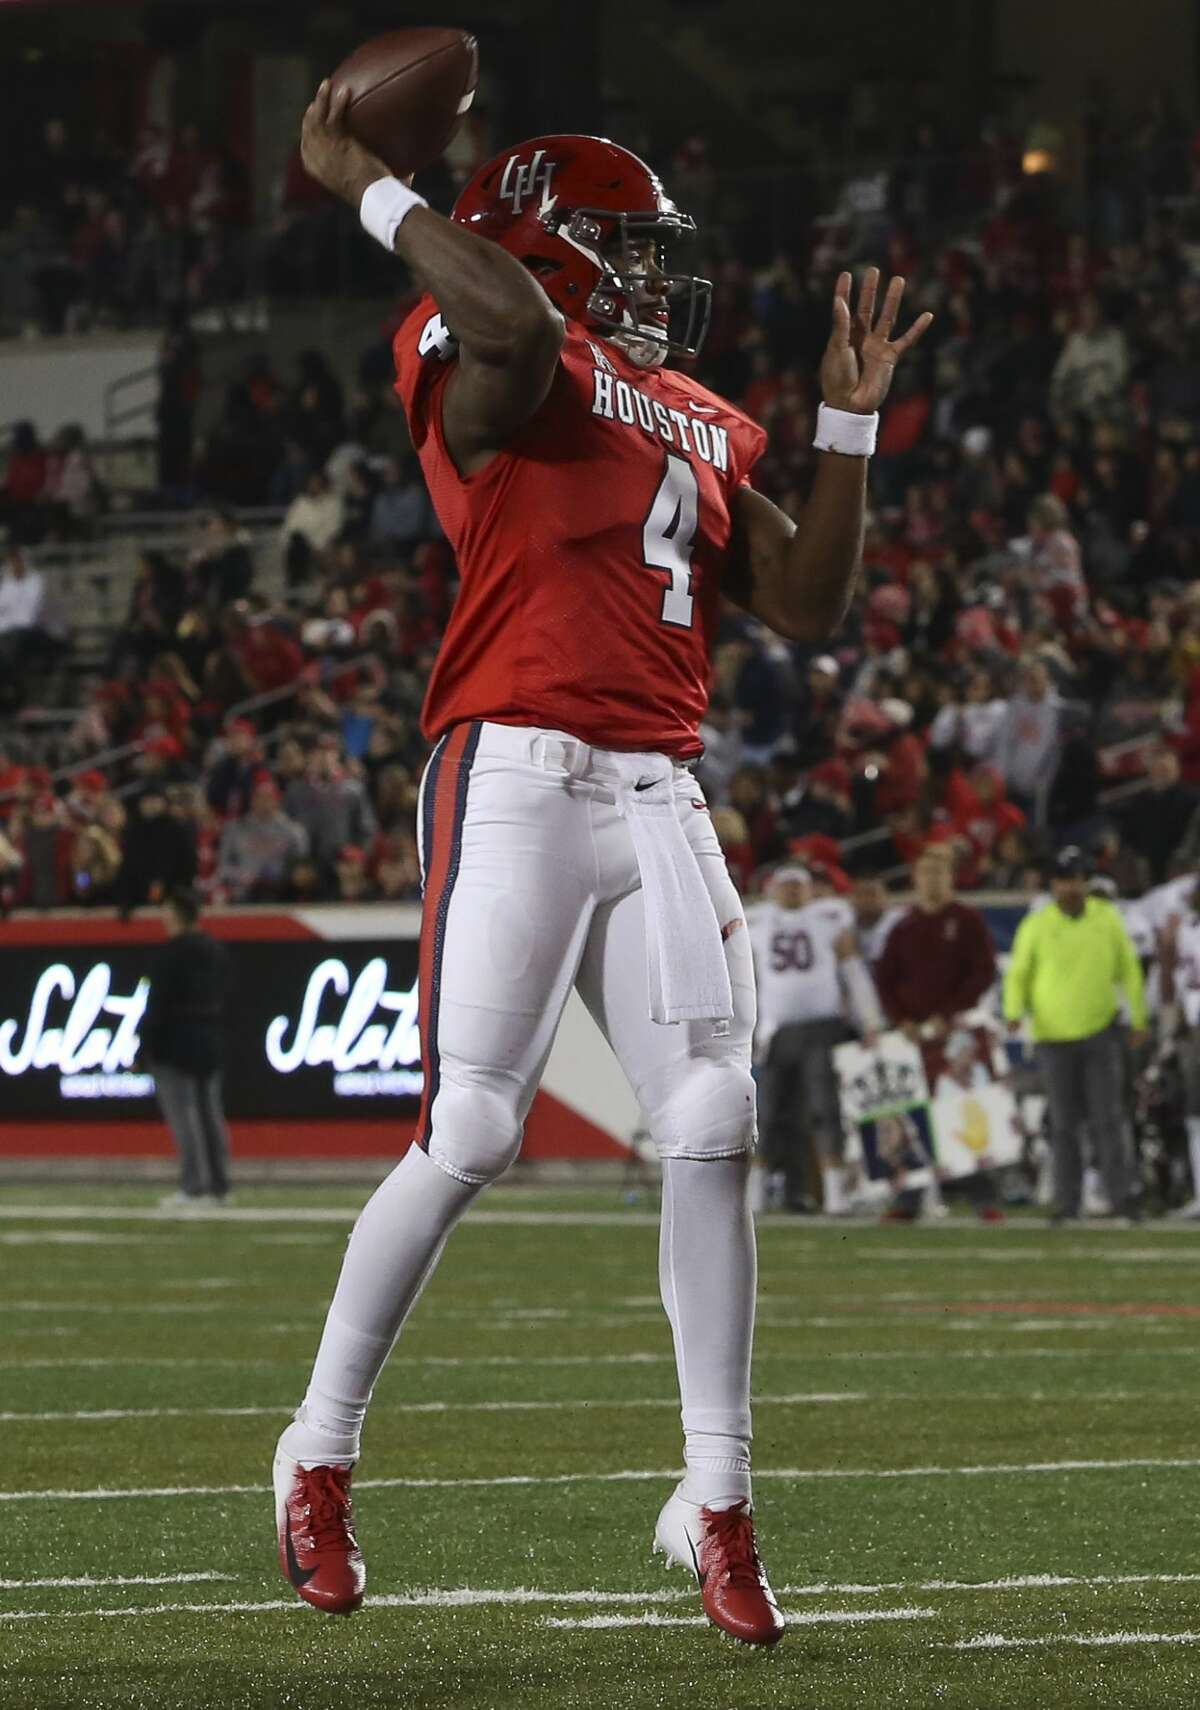 Houston Cougars quarterback D'Eriq King (4) throws a pass to the end zone during the first half of the game Temple Owls at TDECU Stadium on Saturday, Nov. 10, 2018, in Houston.